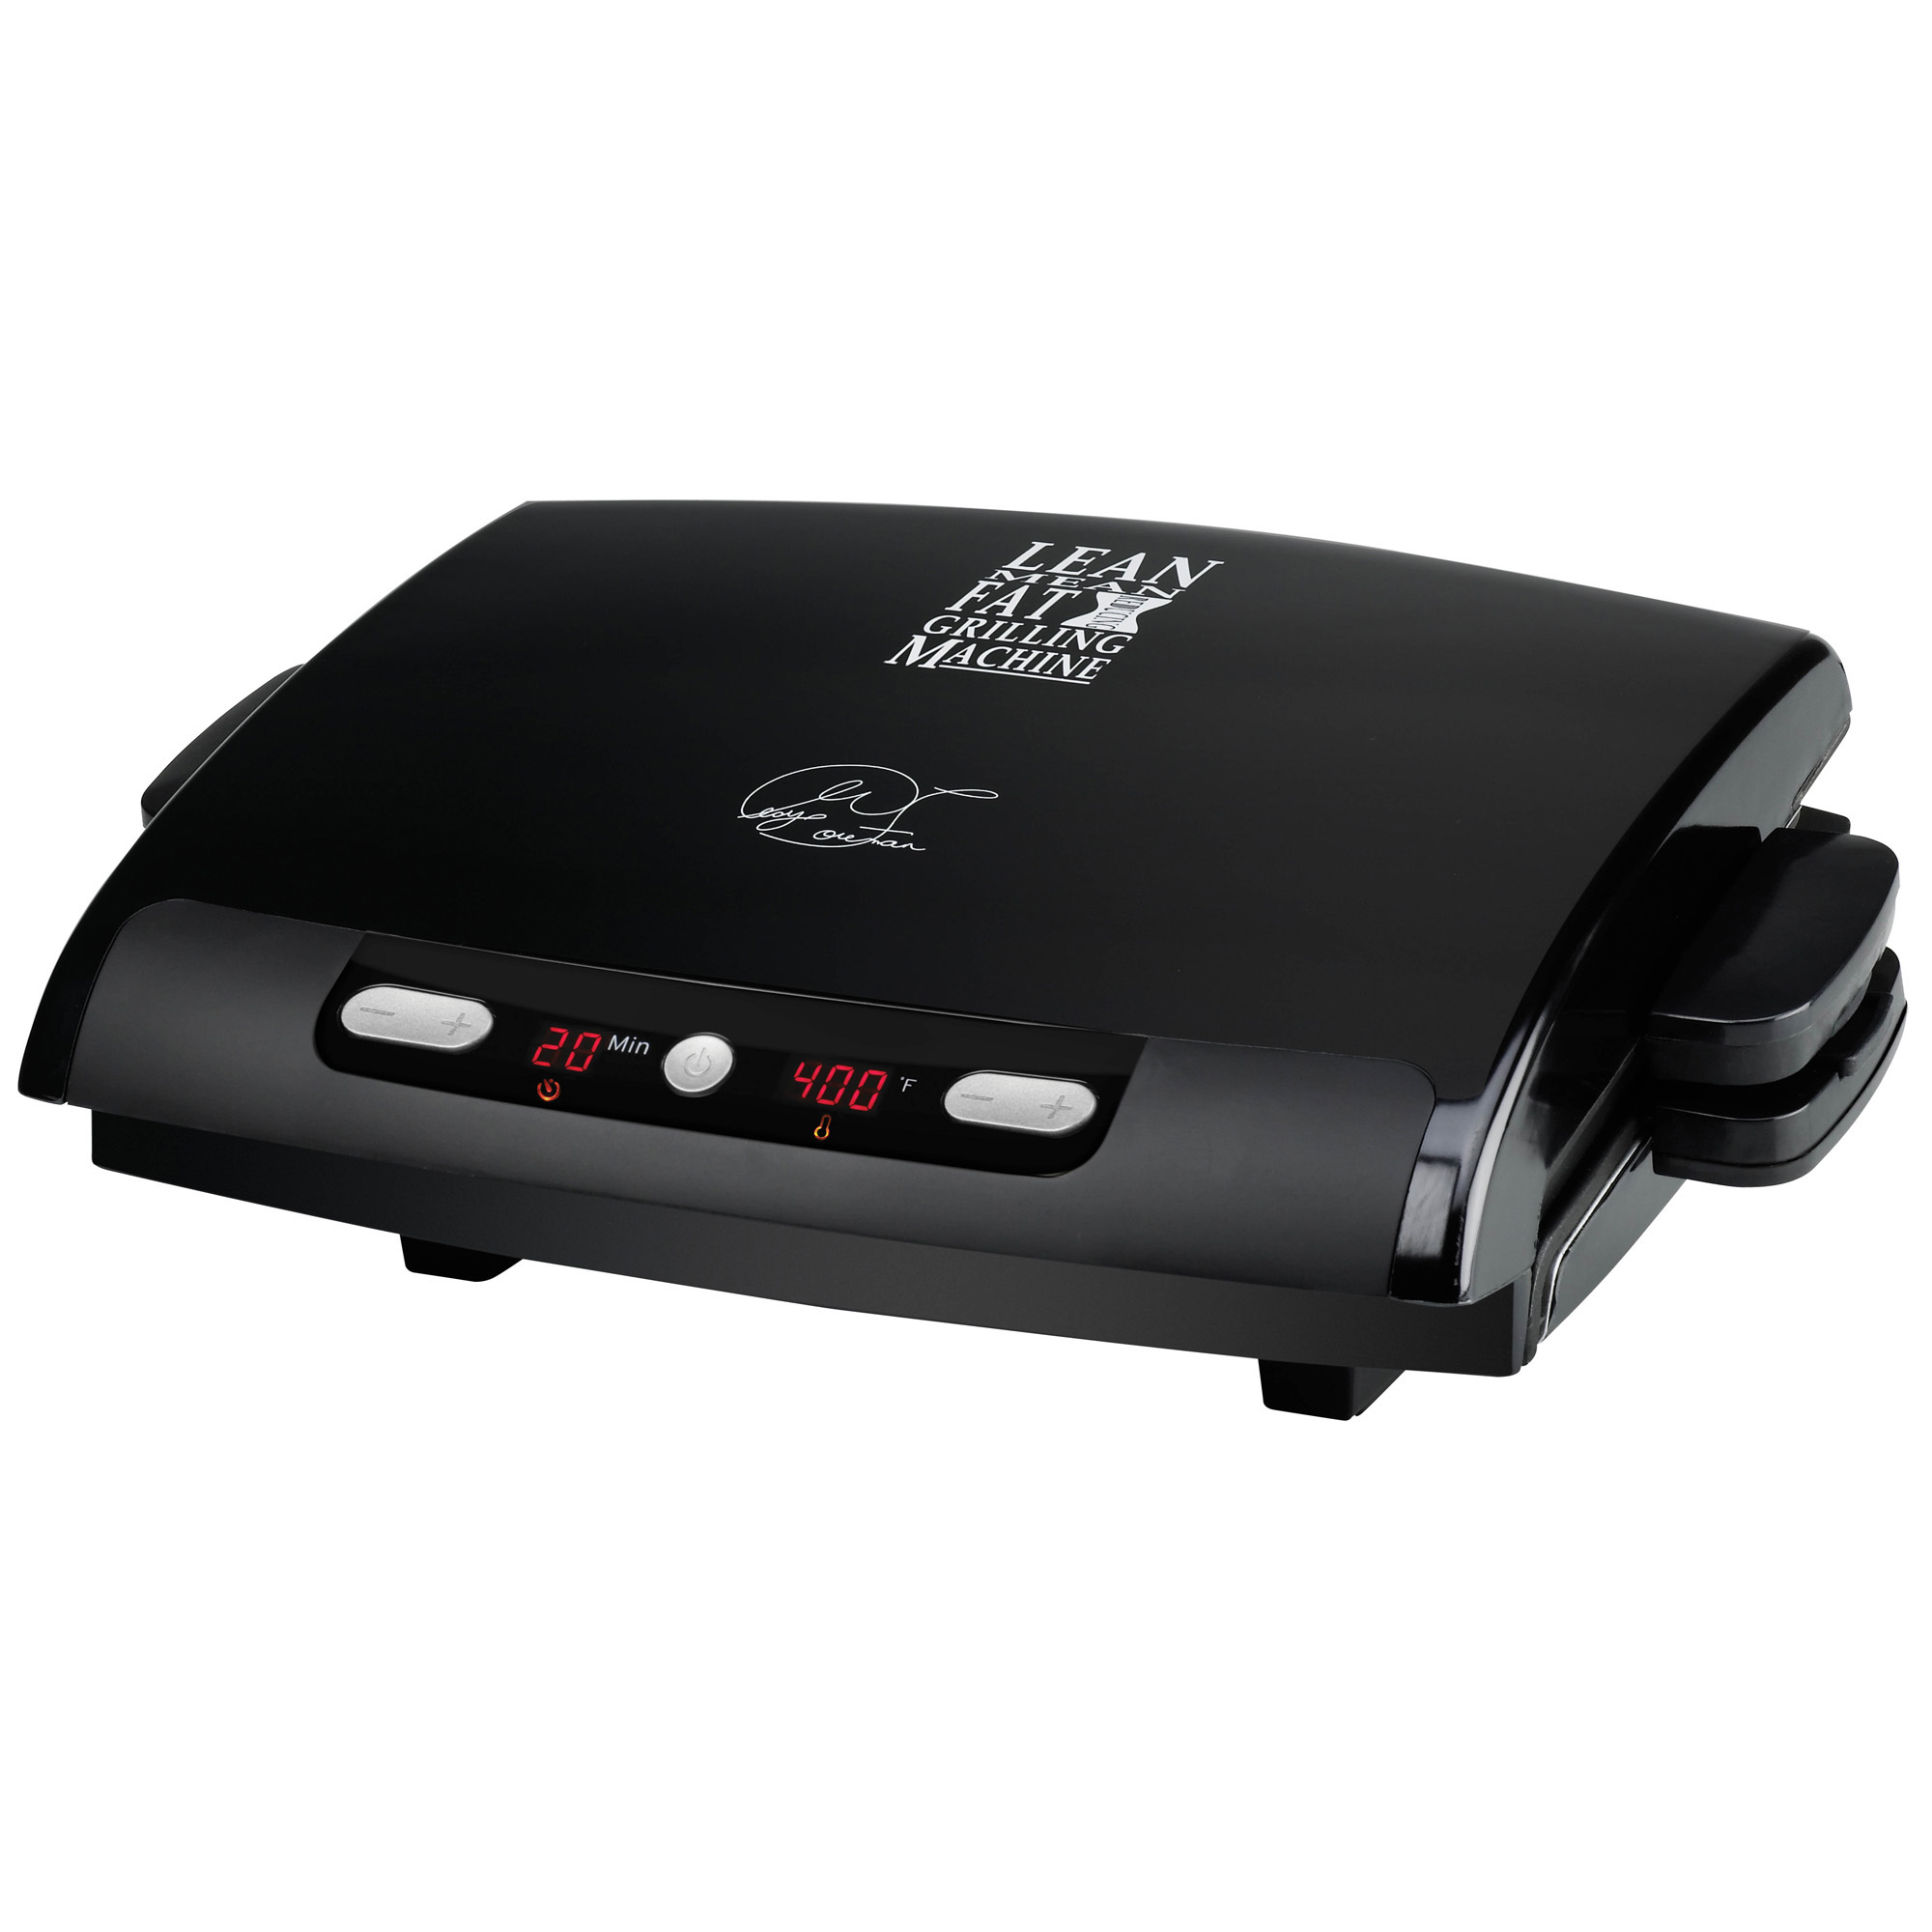 George foreman cooking george foreman shop removable - Largest george foreman grill with removable plates ...